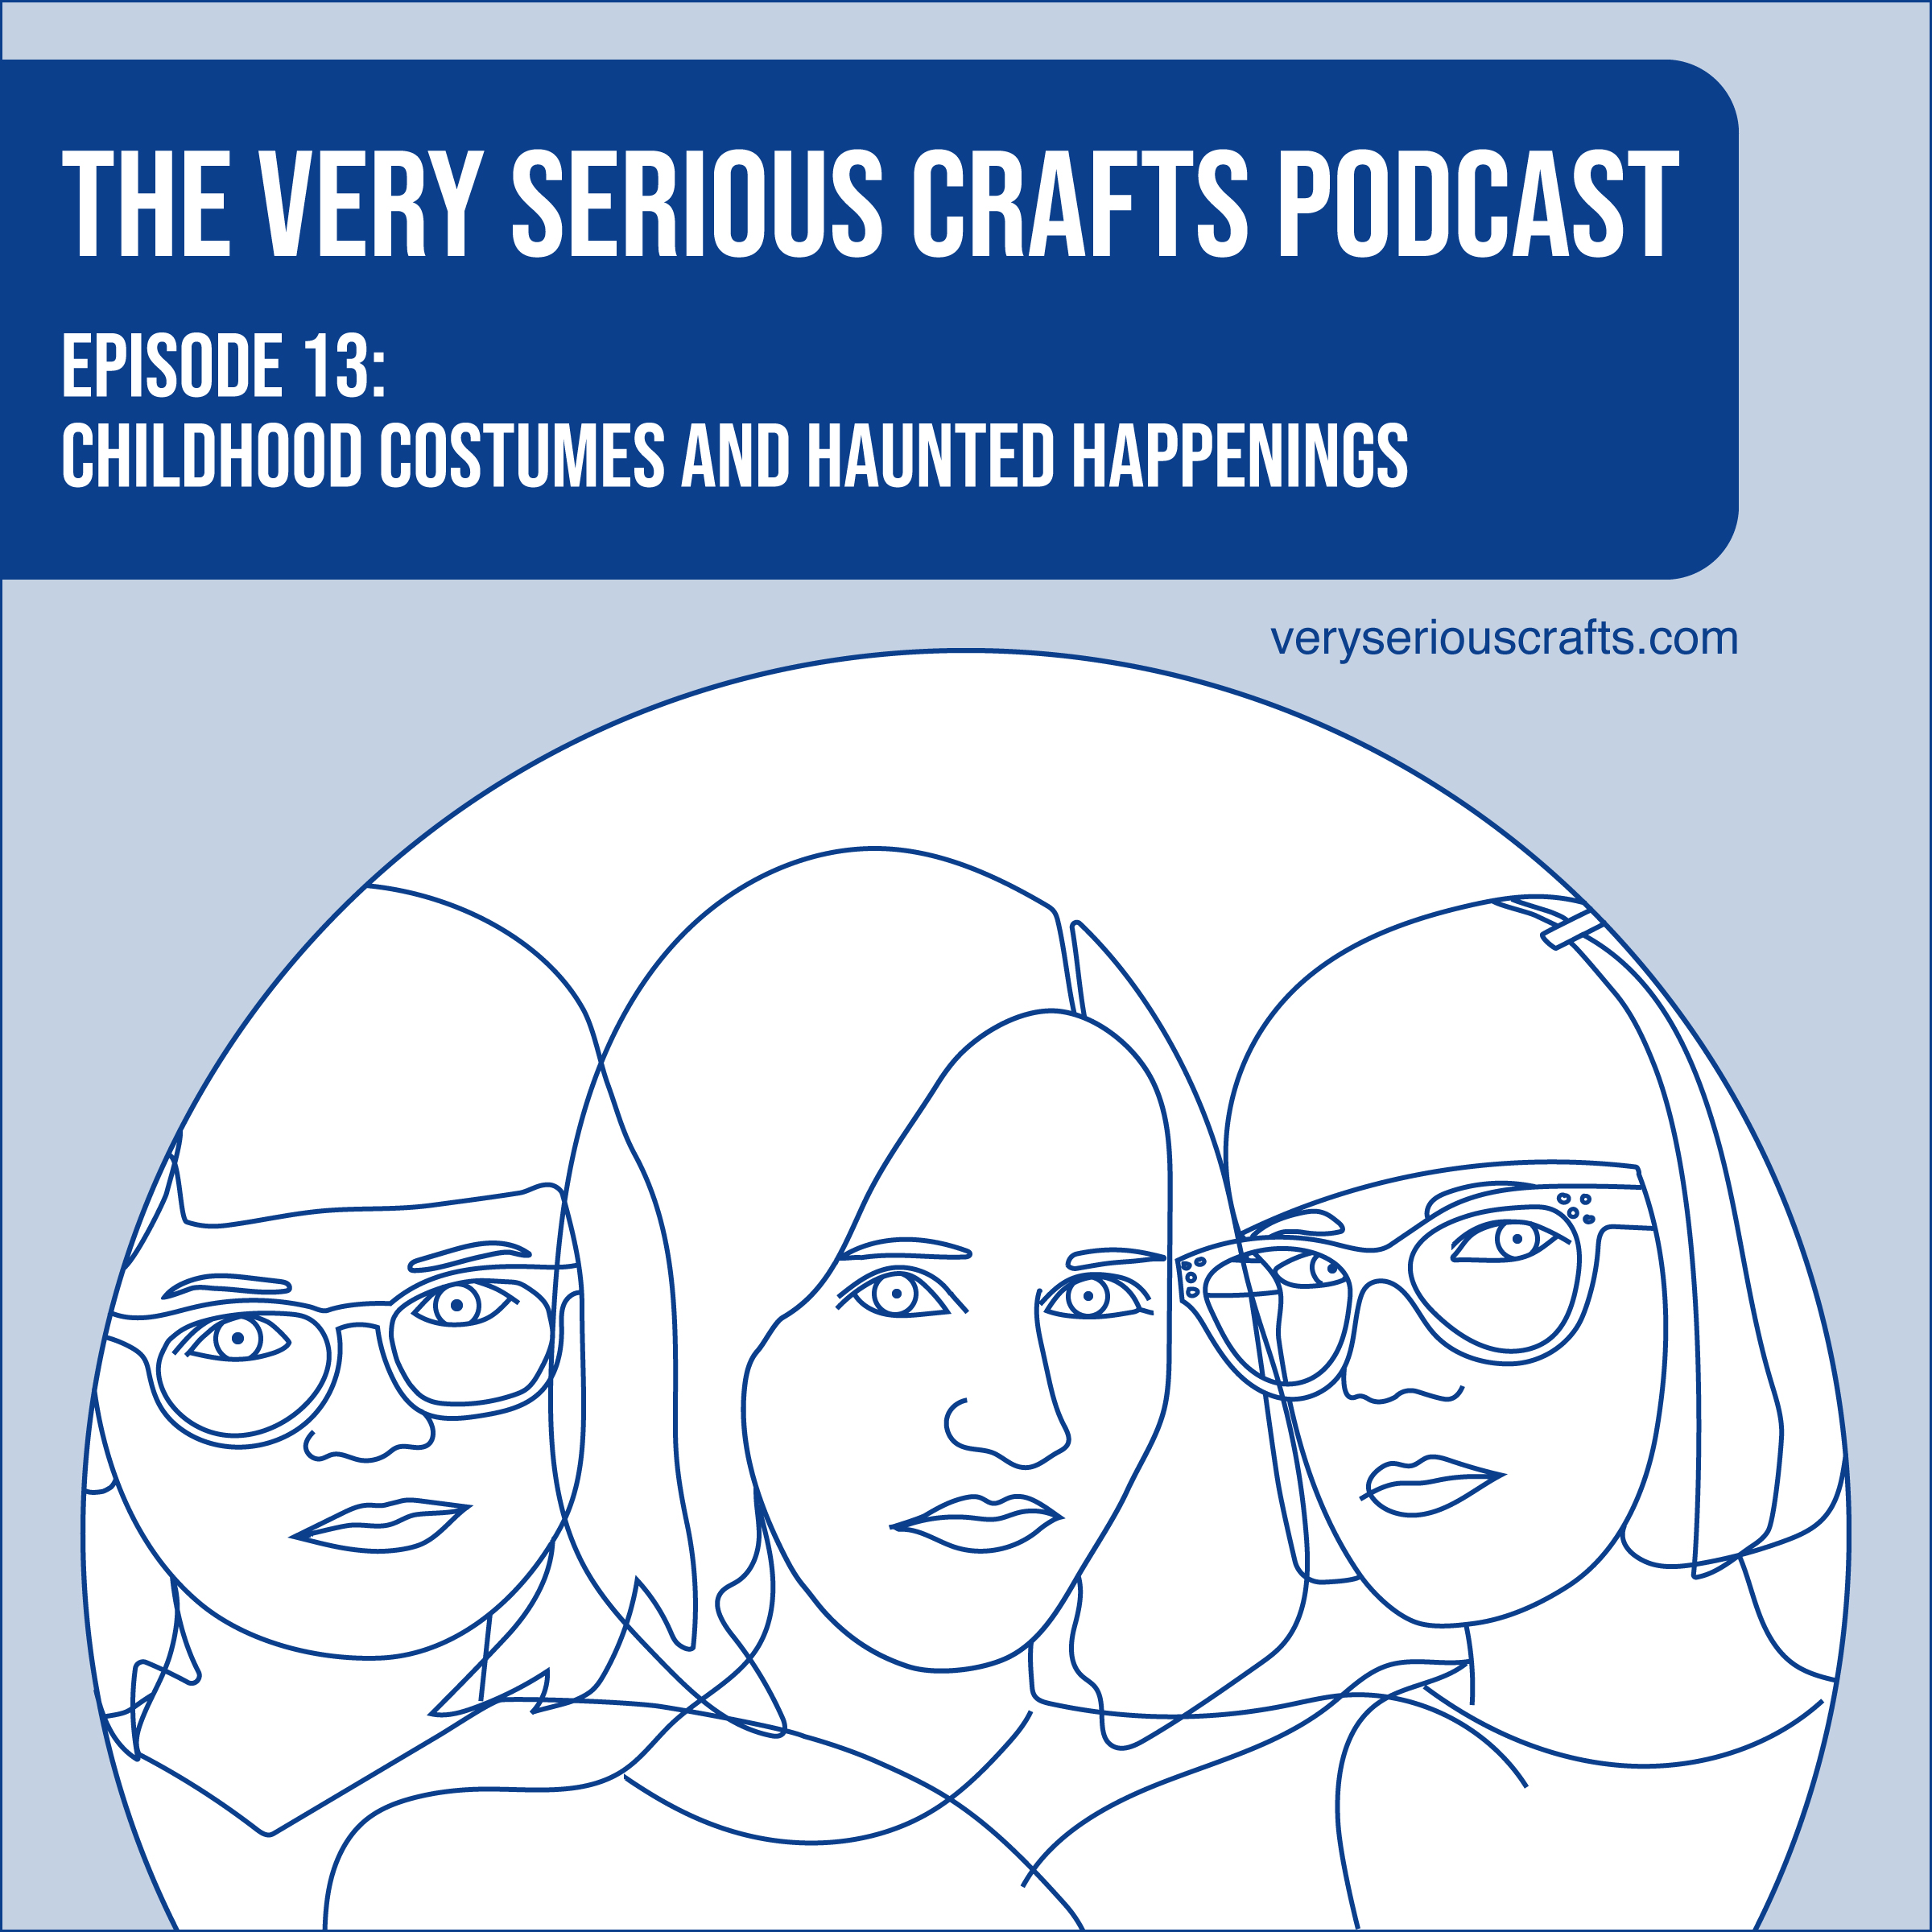 S1E13: Childhood Costumes and Haunted Happenings